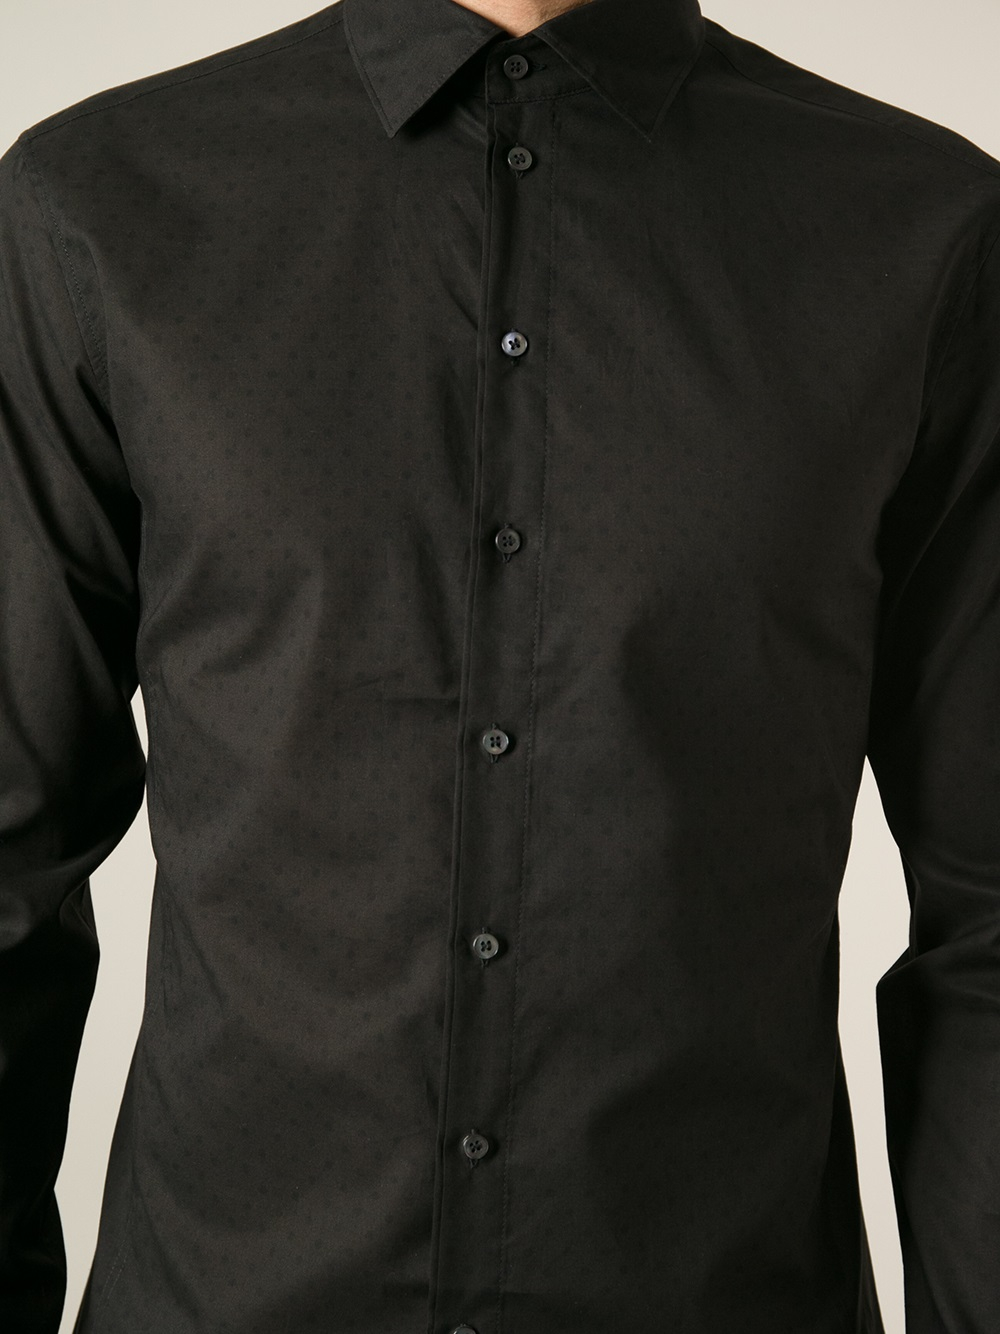 Black Collared Shirt | Is Shirt